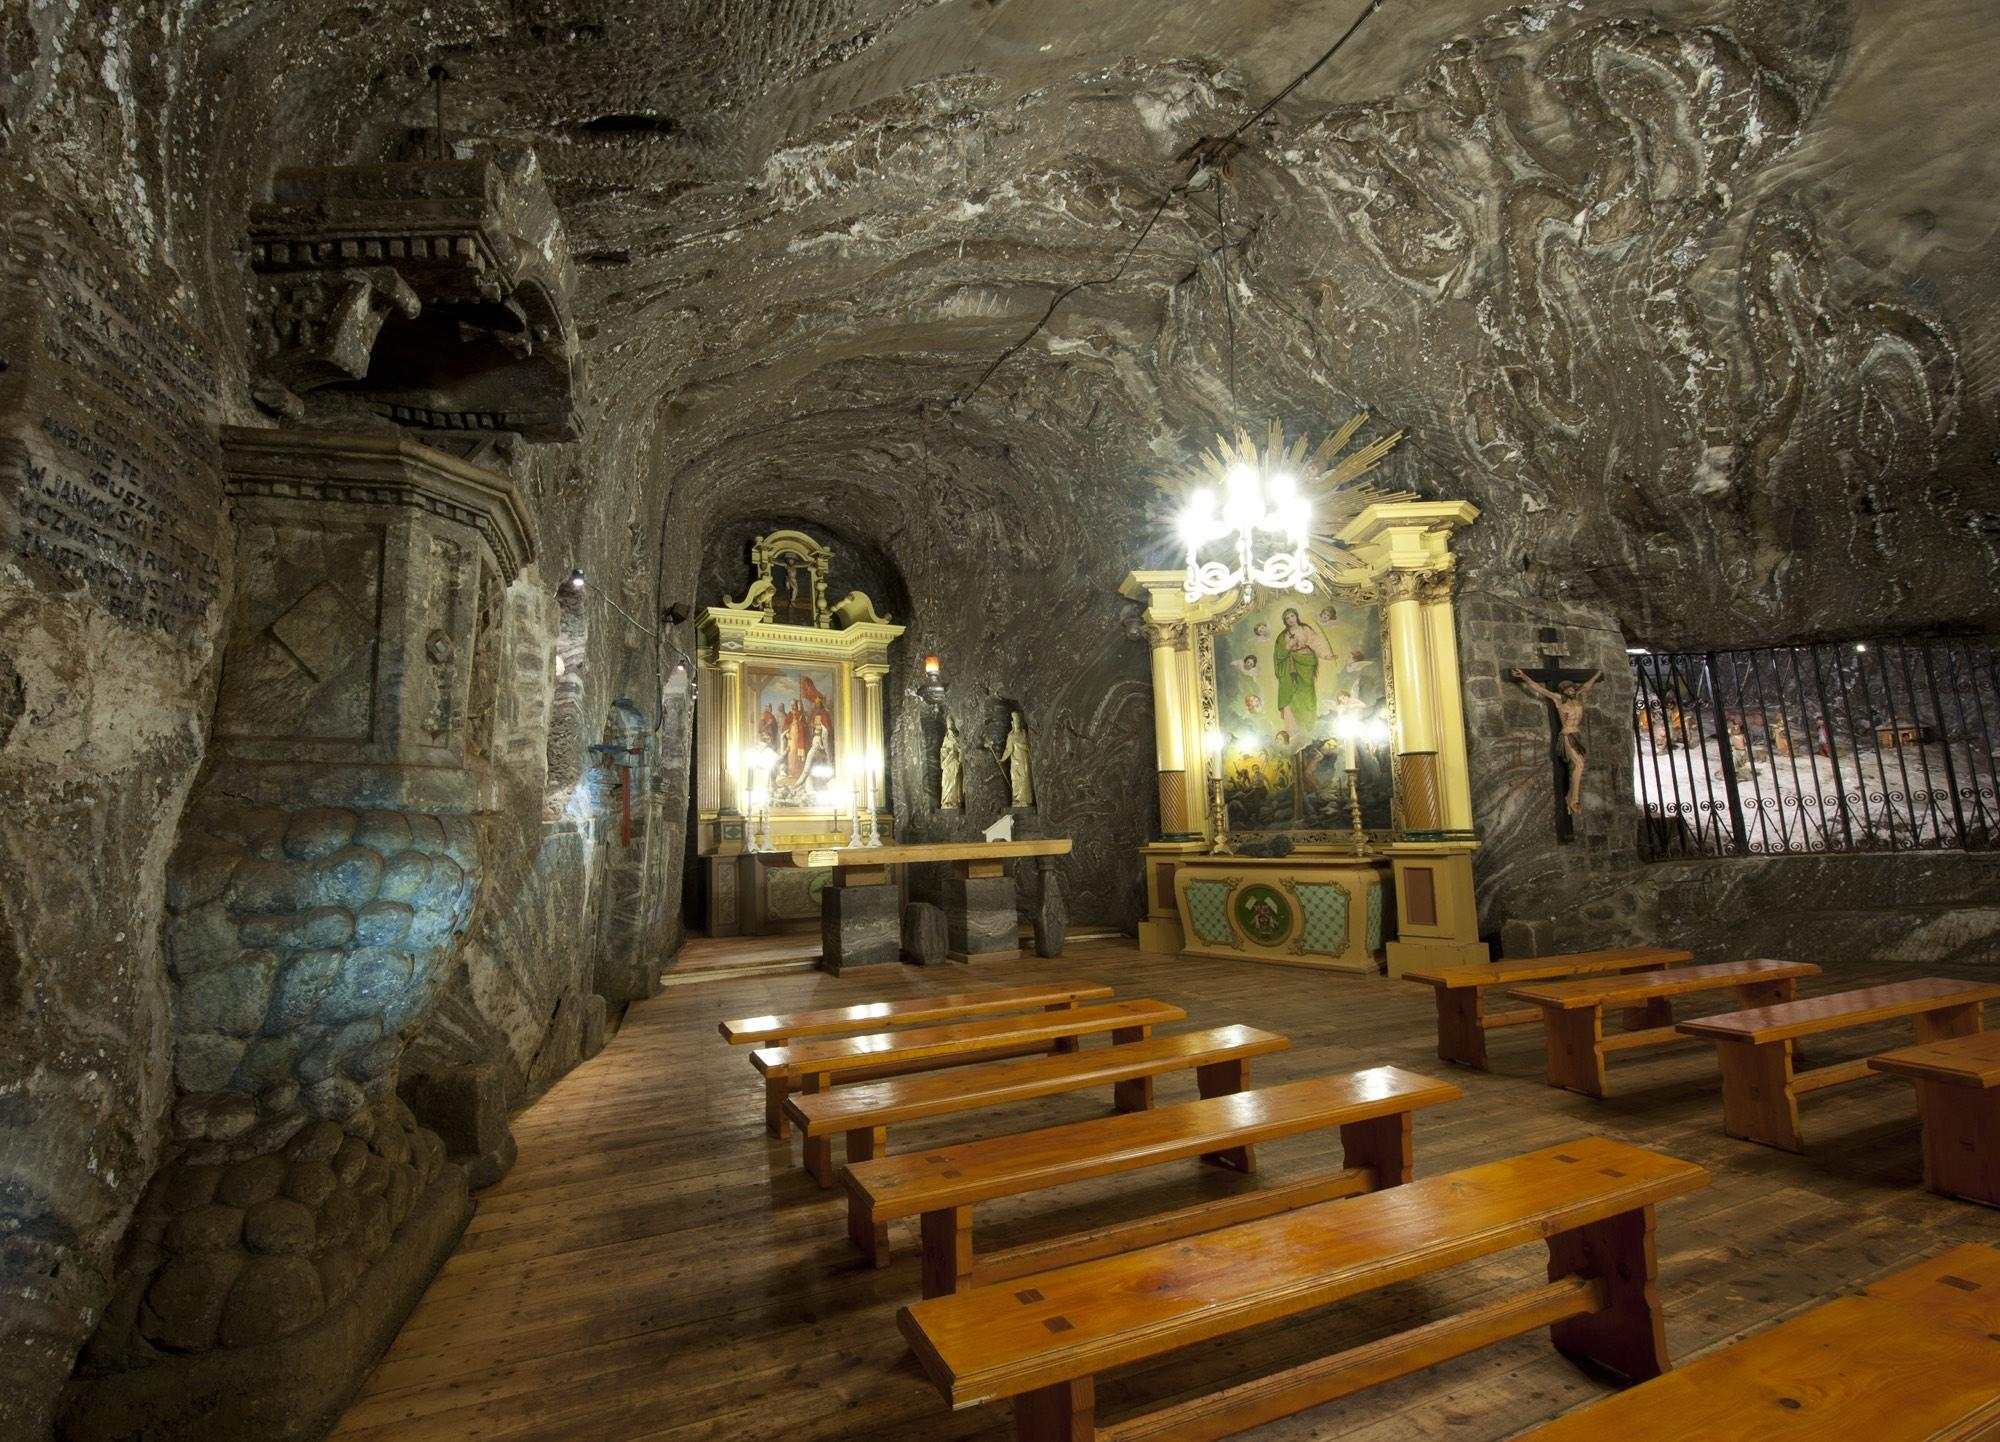 The history of the Chapel of St. Kinga in the Bochnia Salt Mine, as the place of worship, dates back to 1747. Since 2016, the saint's relics have been kept in the Chapel. – © Artur Grzybowski